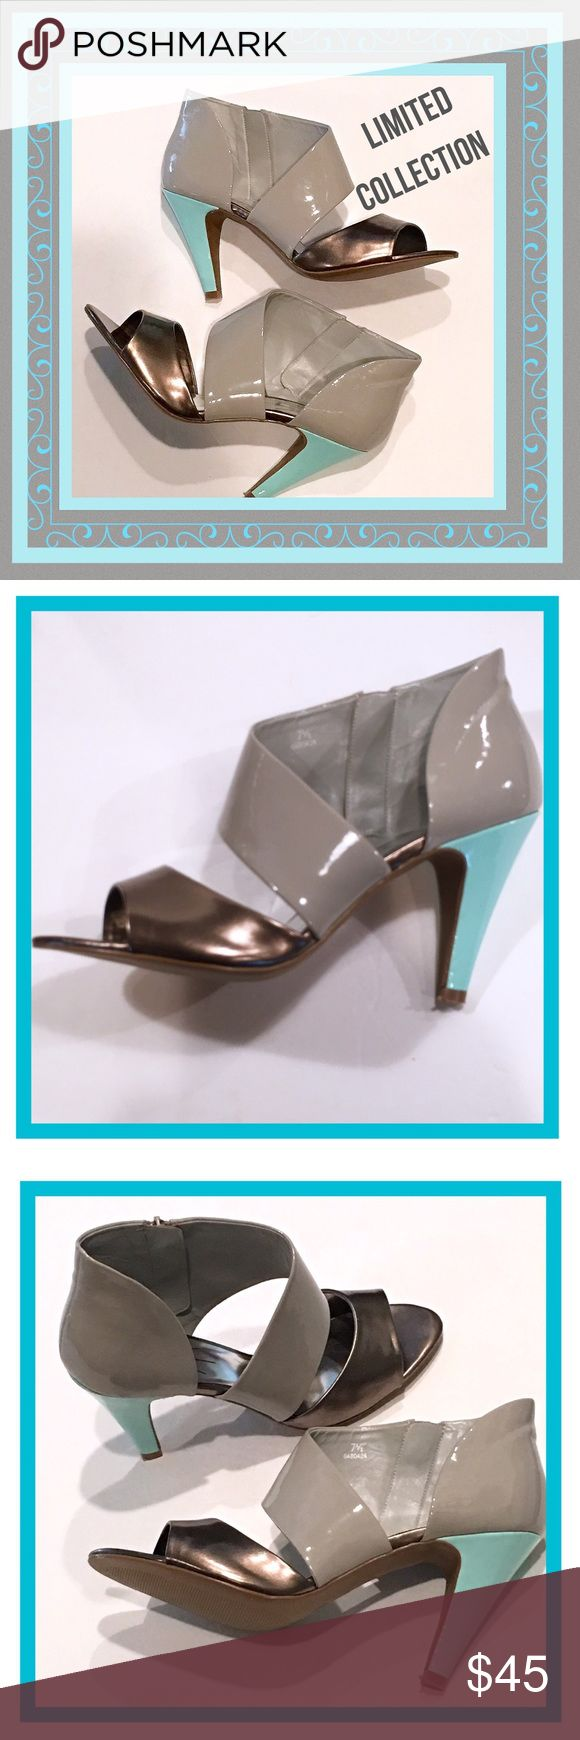 "LIMITED COLLECTION Open-Toed Patent Heels NEW 7.5 Tricolored slate gray, aqua and metallic bronze patent leather side zip open-toed heels, size 7.5.  Heel height is 4"".  Brand new...no box. Limited Collection Shoes Heels"